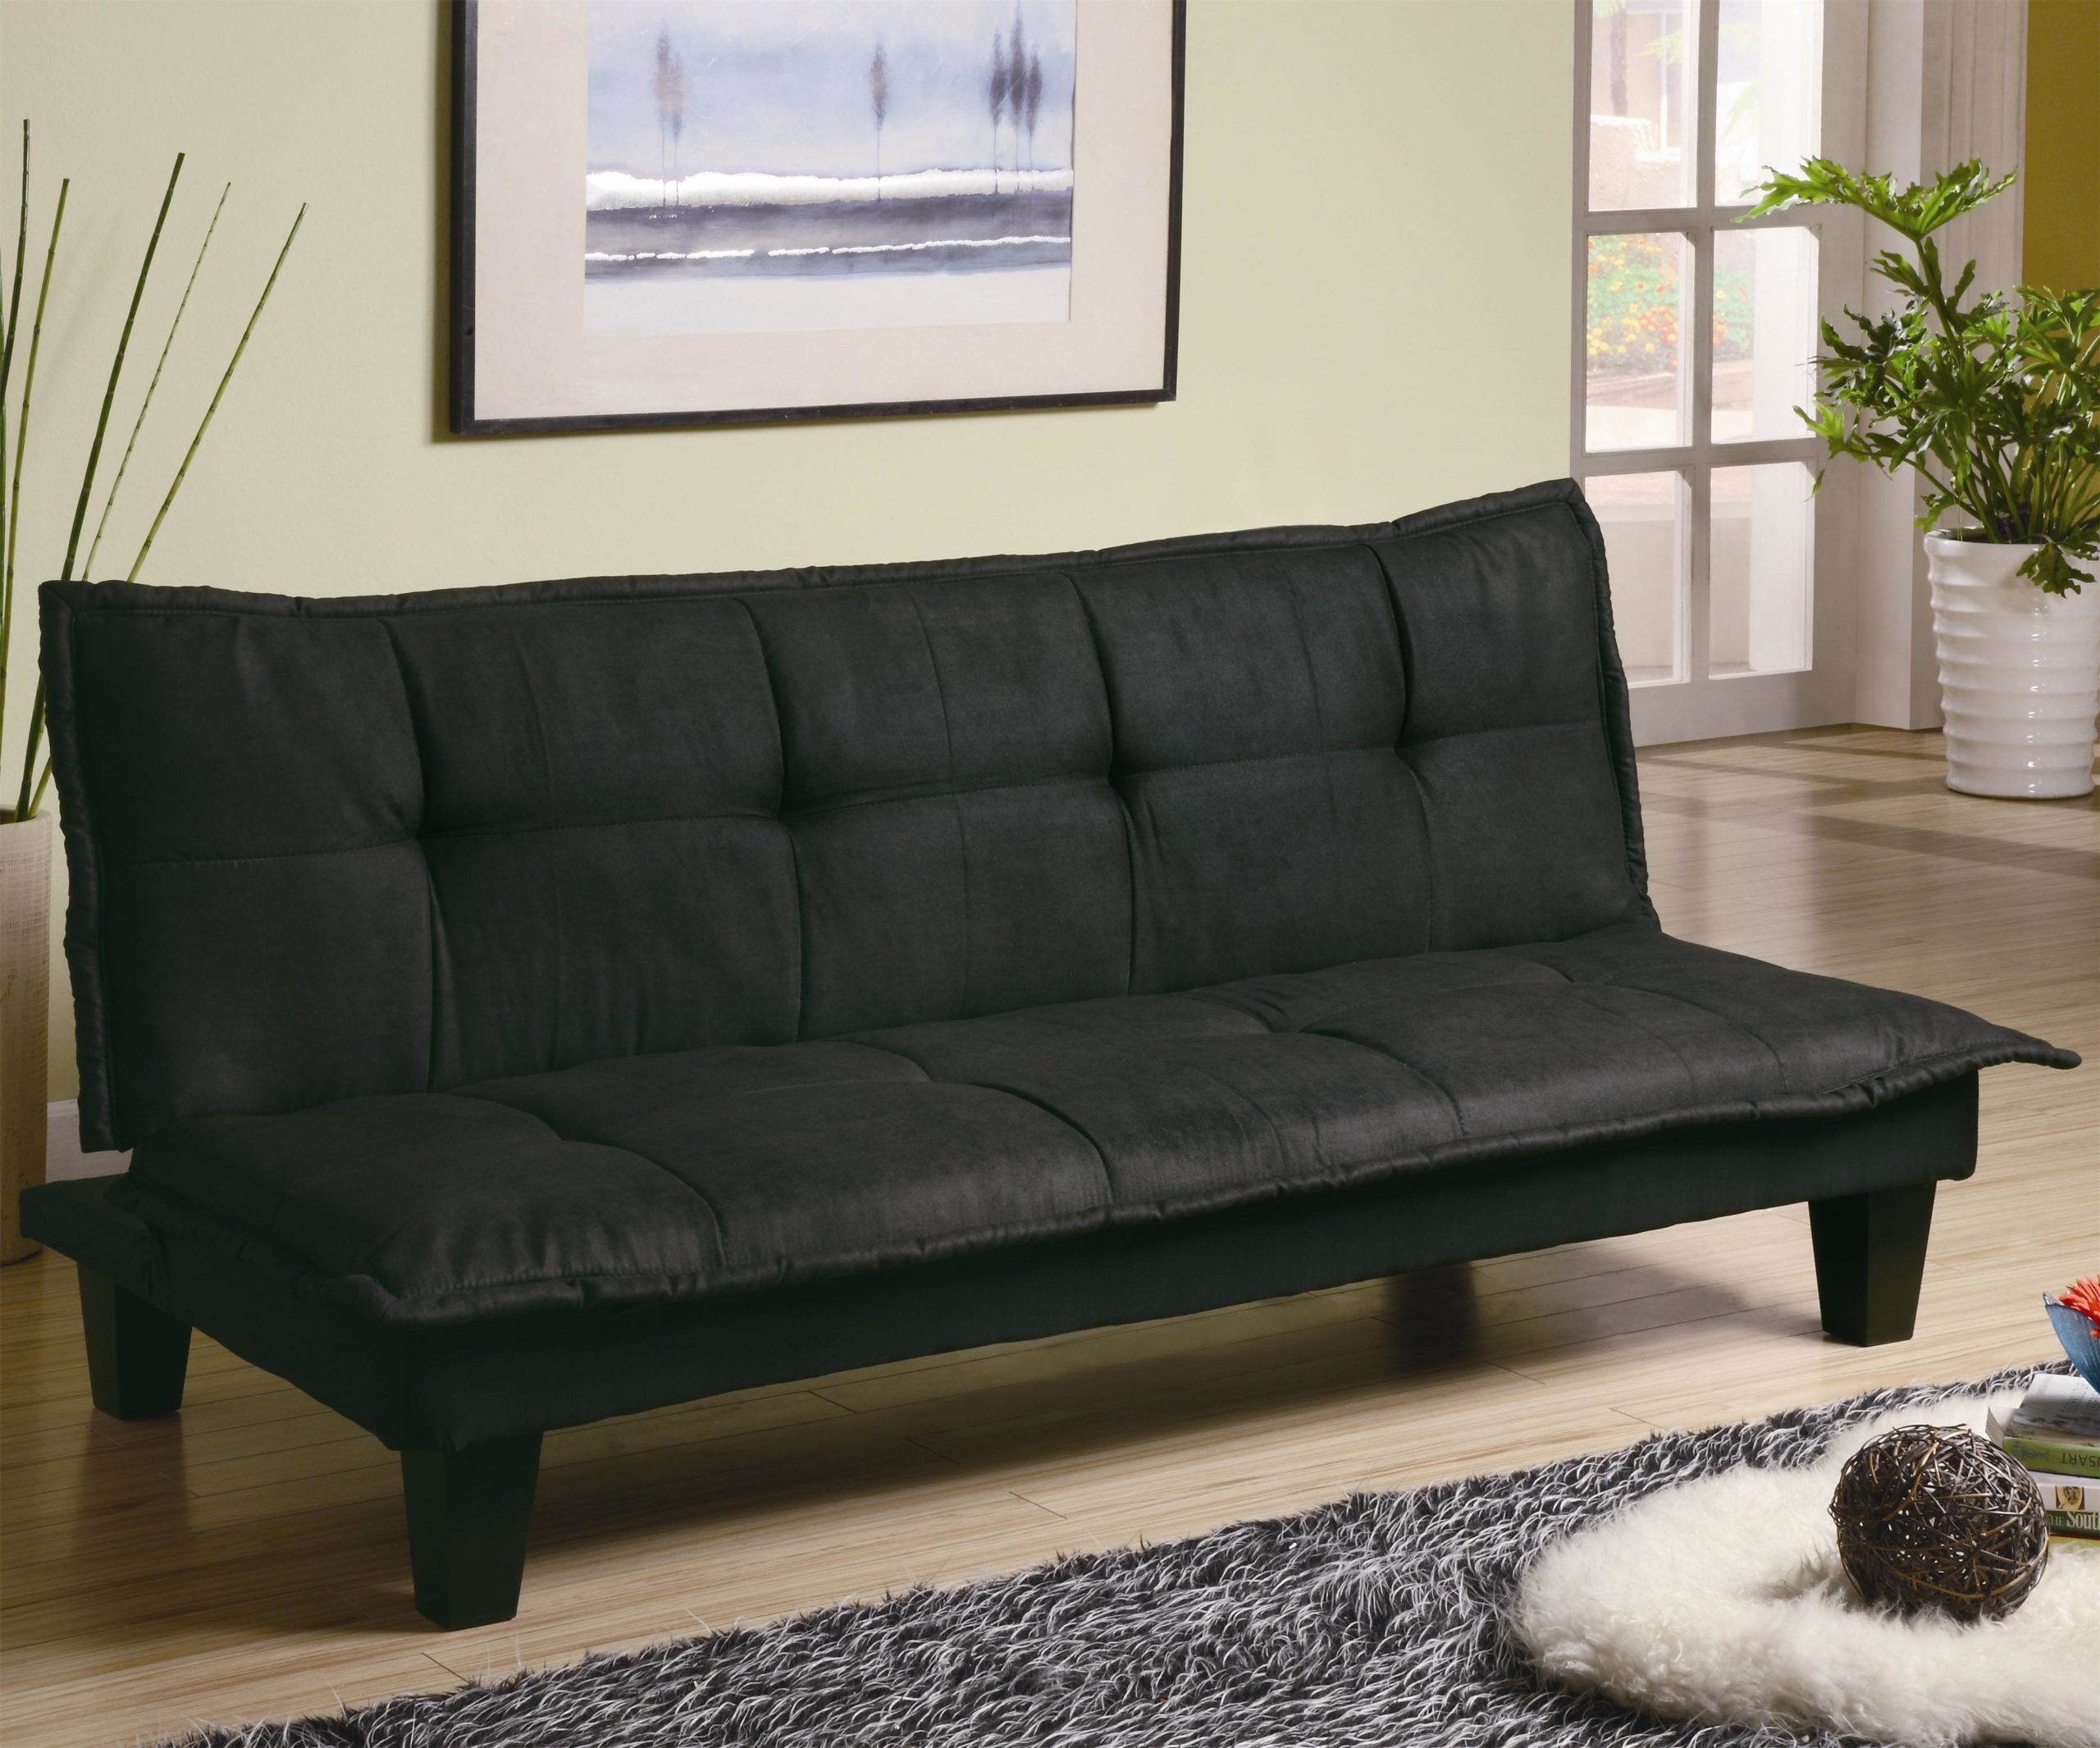 Black Casual Padded Convertible Sofa Bed in up position